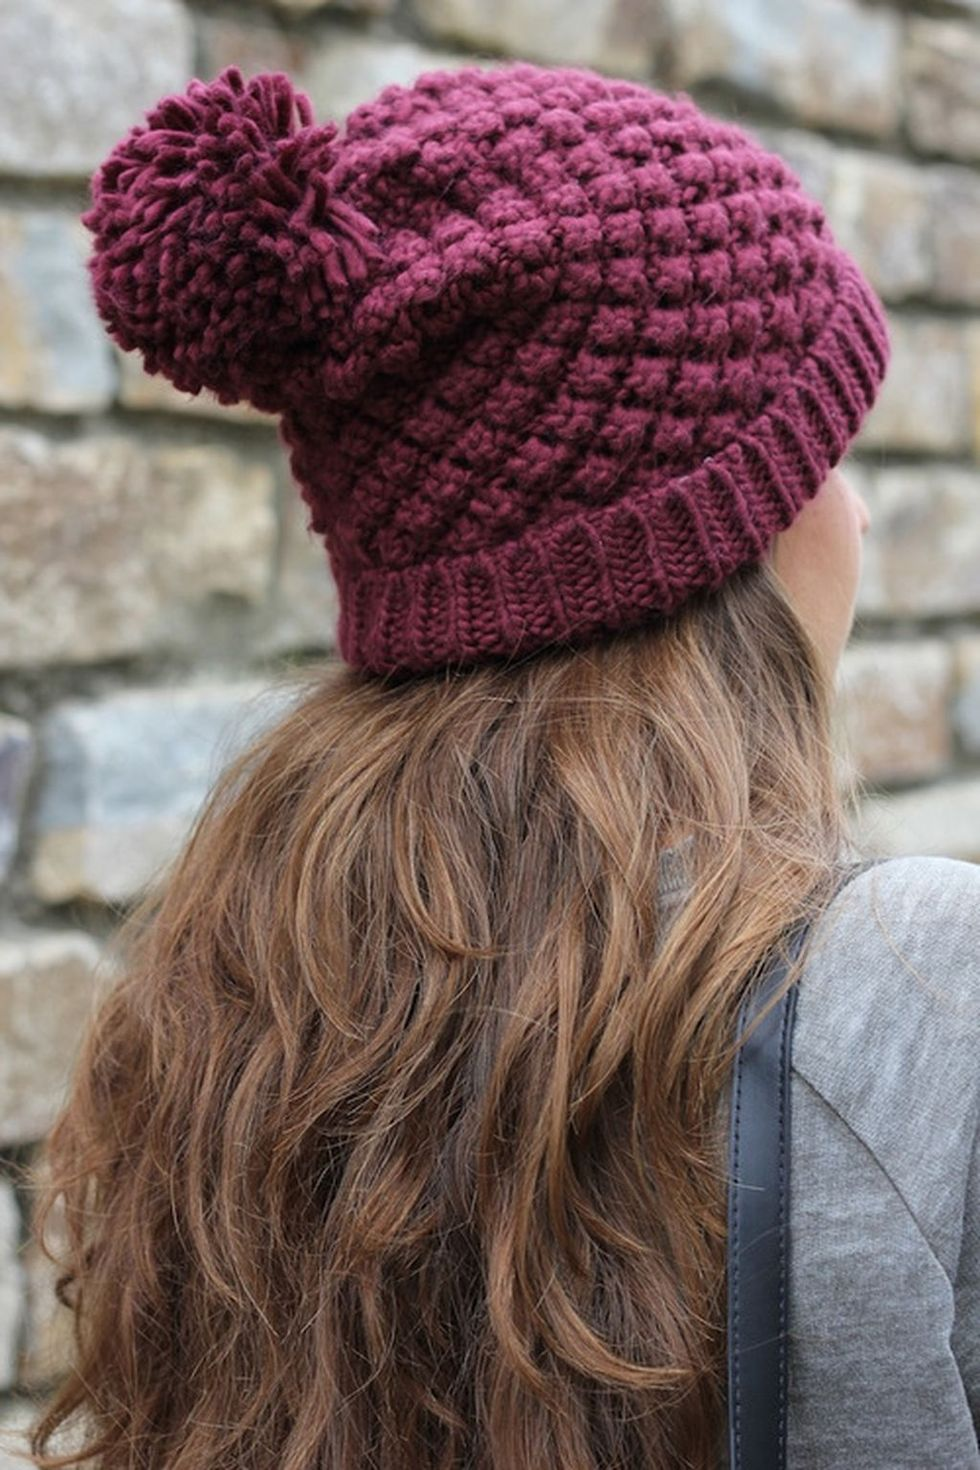 Fashionable Women Hats For Winter And Snow Outfits 60 -8880